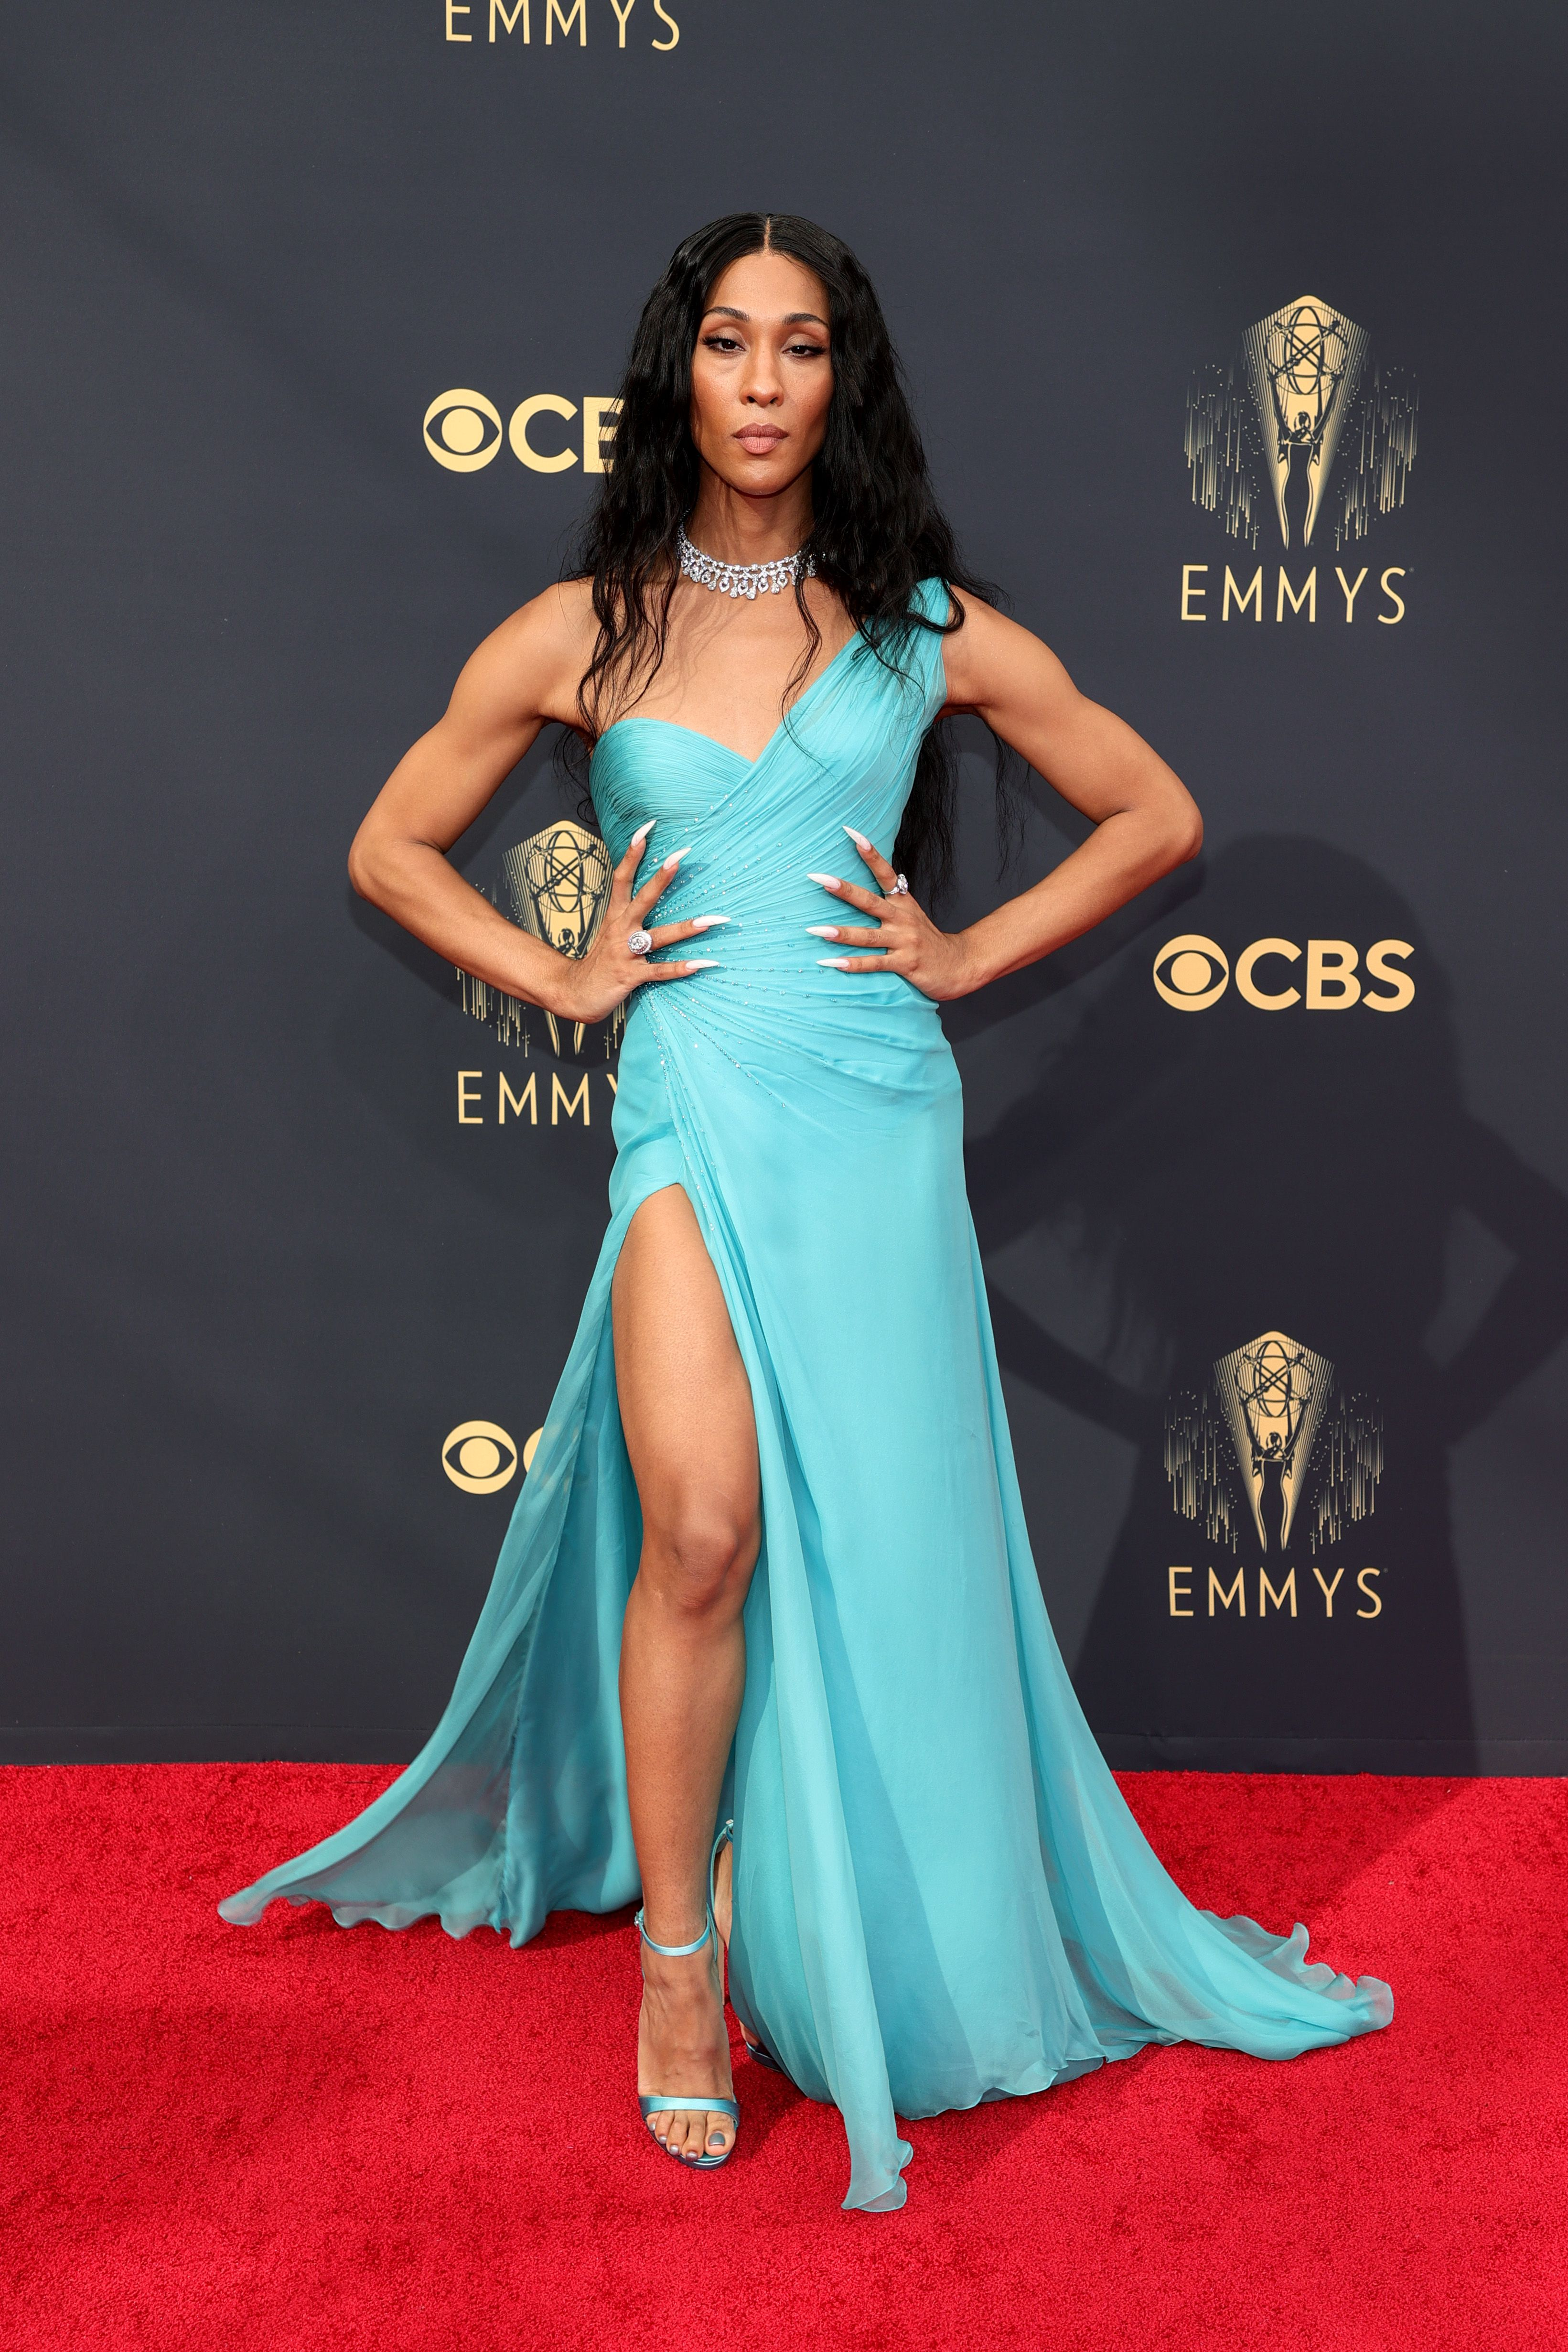 Mj Rodriguez Struck a Pose in a Custom Atelier Versace Gown at the Emmy's